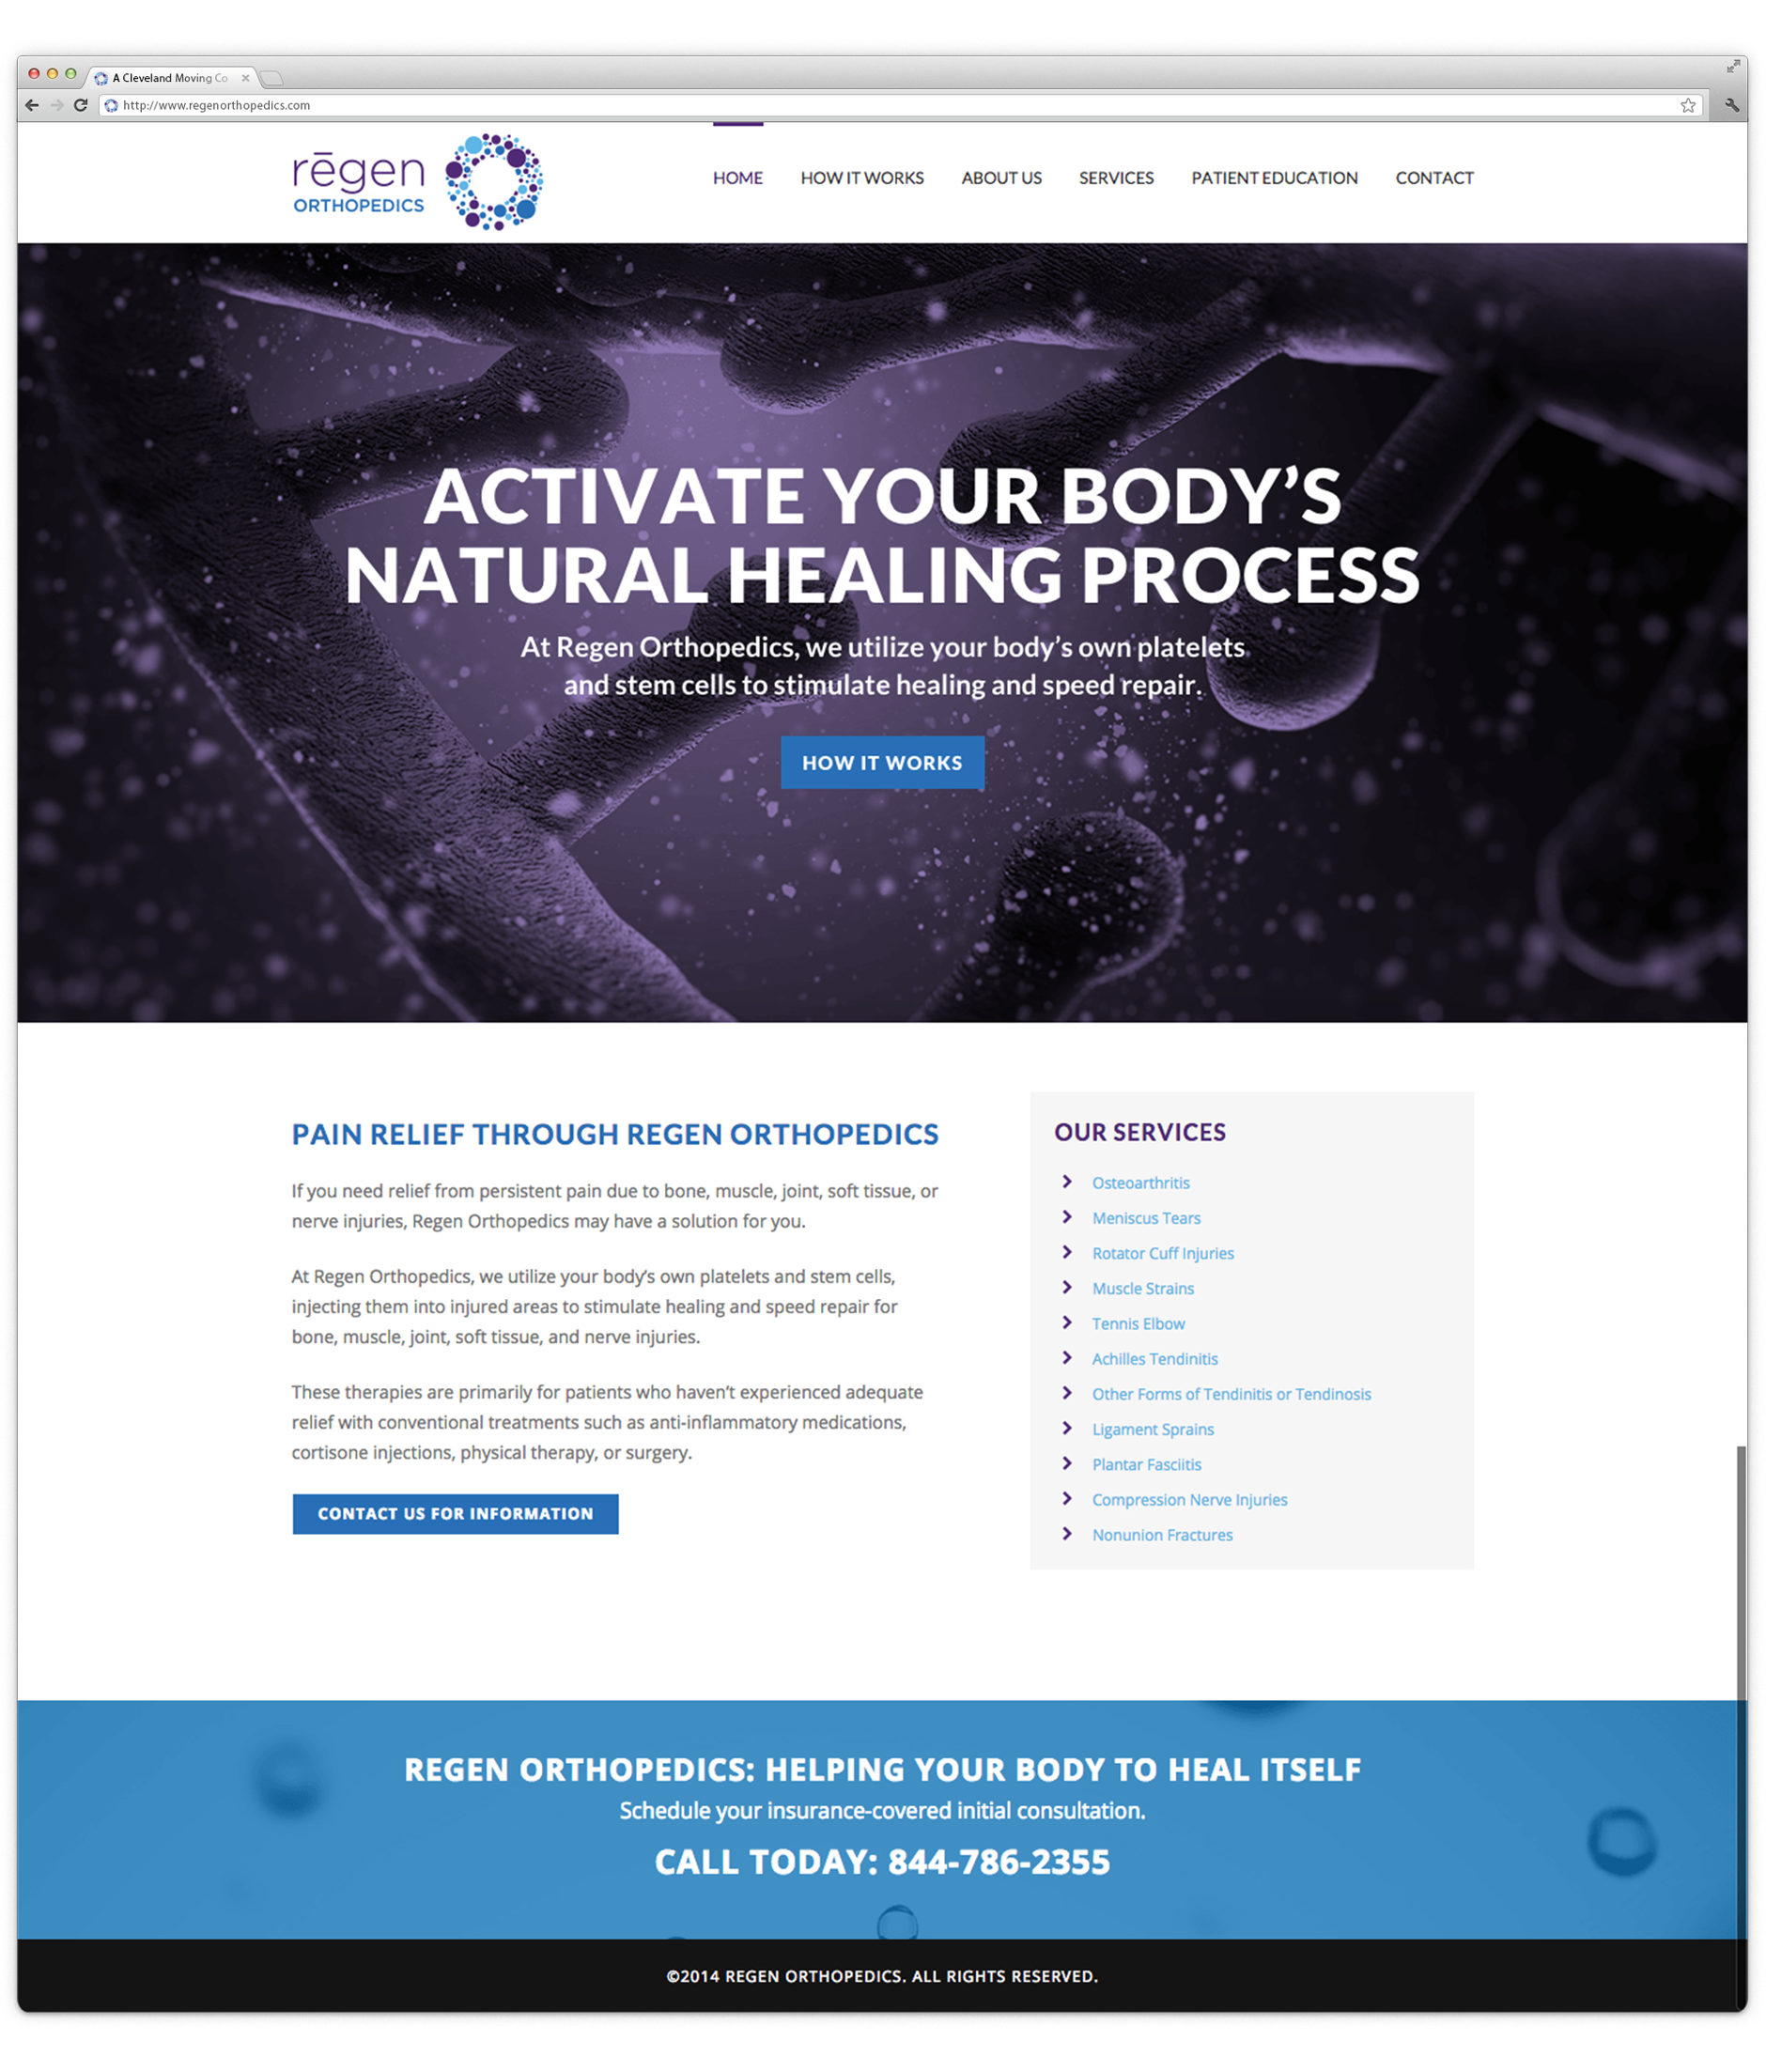 Regen Orthopedics Web Design